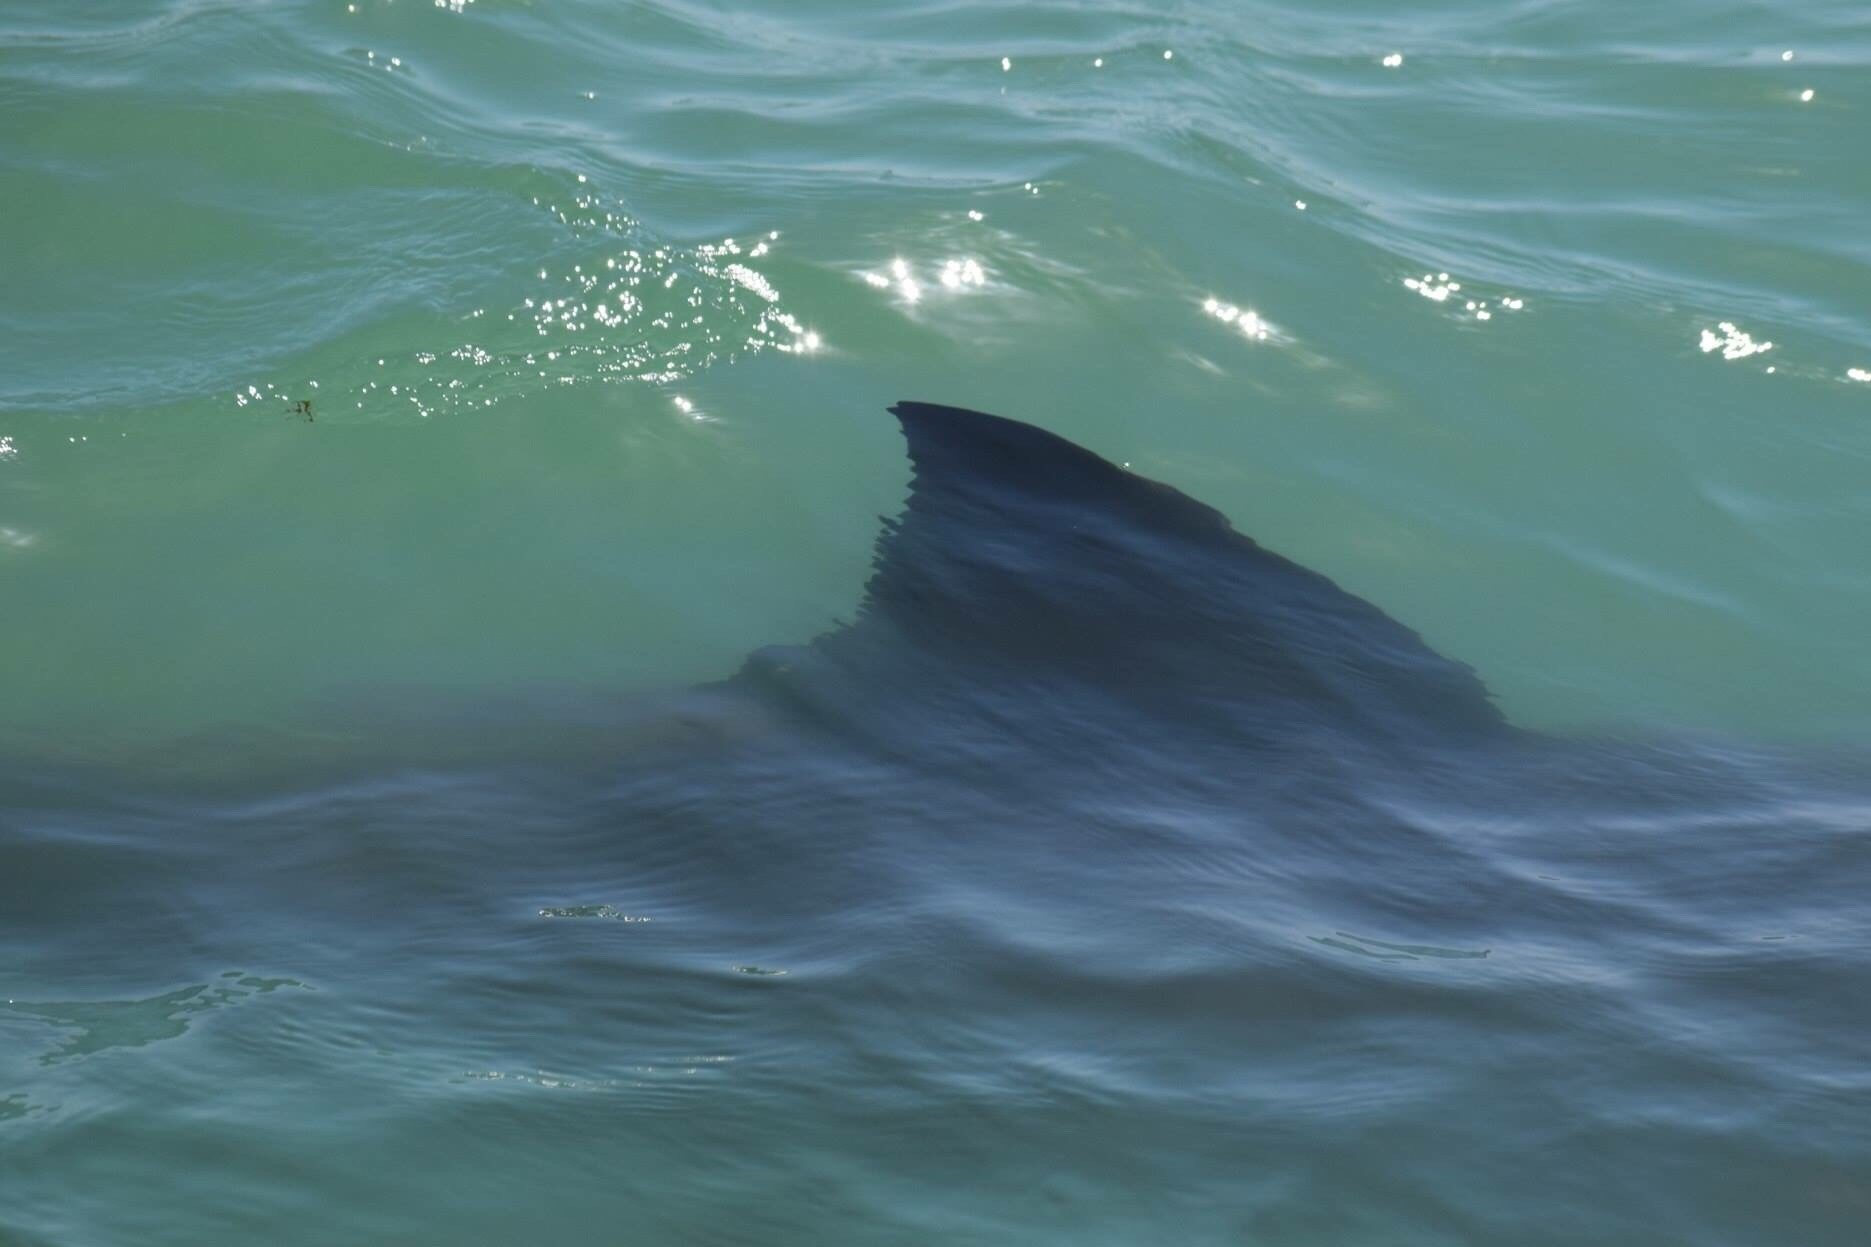 Photographer Eric Frigger captured a close-up of the fin of a juvenile great white shark, one of a dozen swimming off the Orange County coast recently. Long-time residents say they haven't seen such high numbers of sharks in the area during their lifetime.